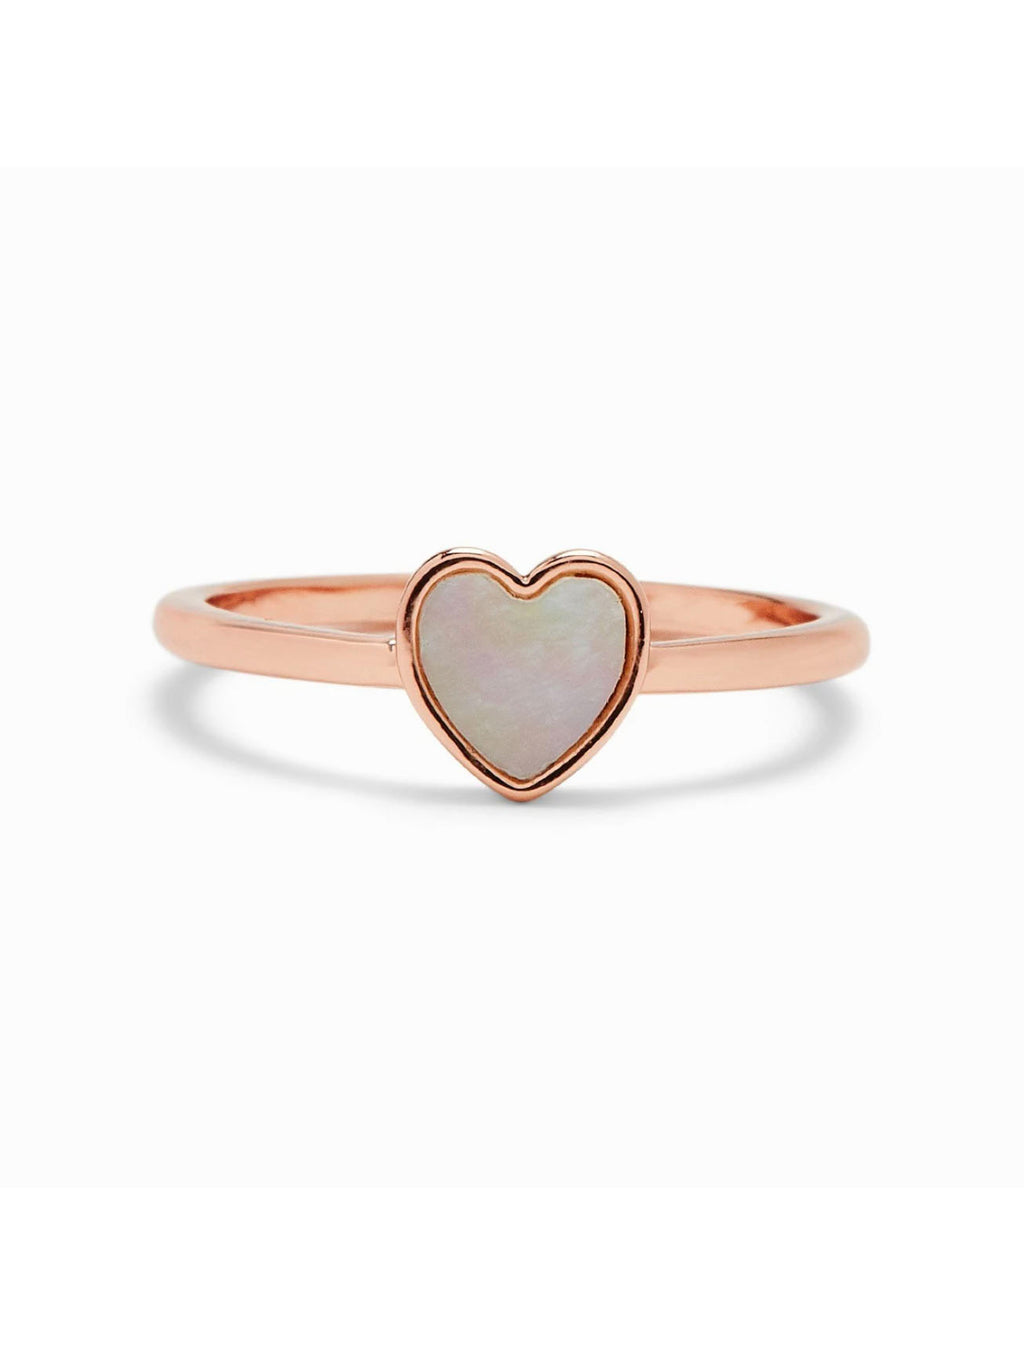 Pura Vida Heart of Pearl Ring in Rose Gold